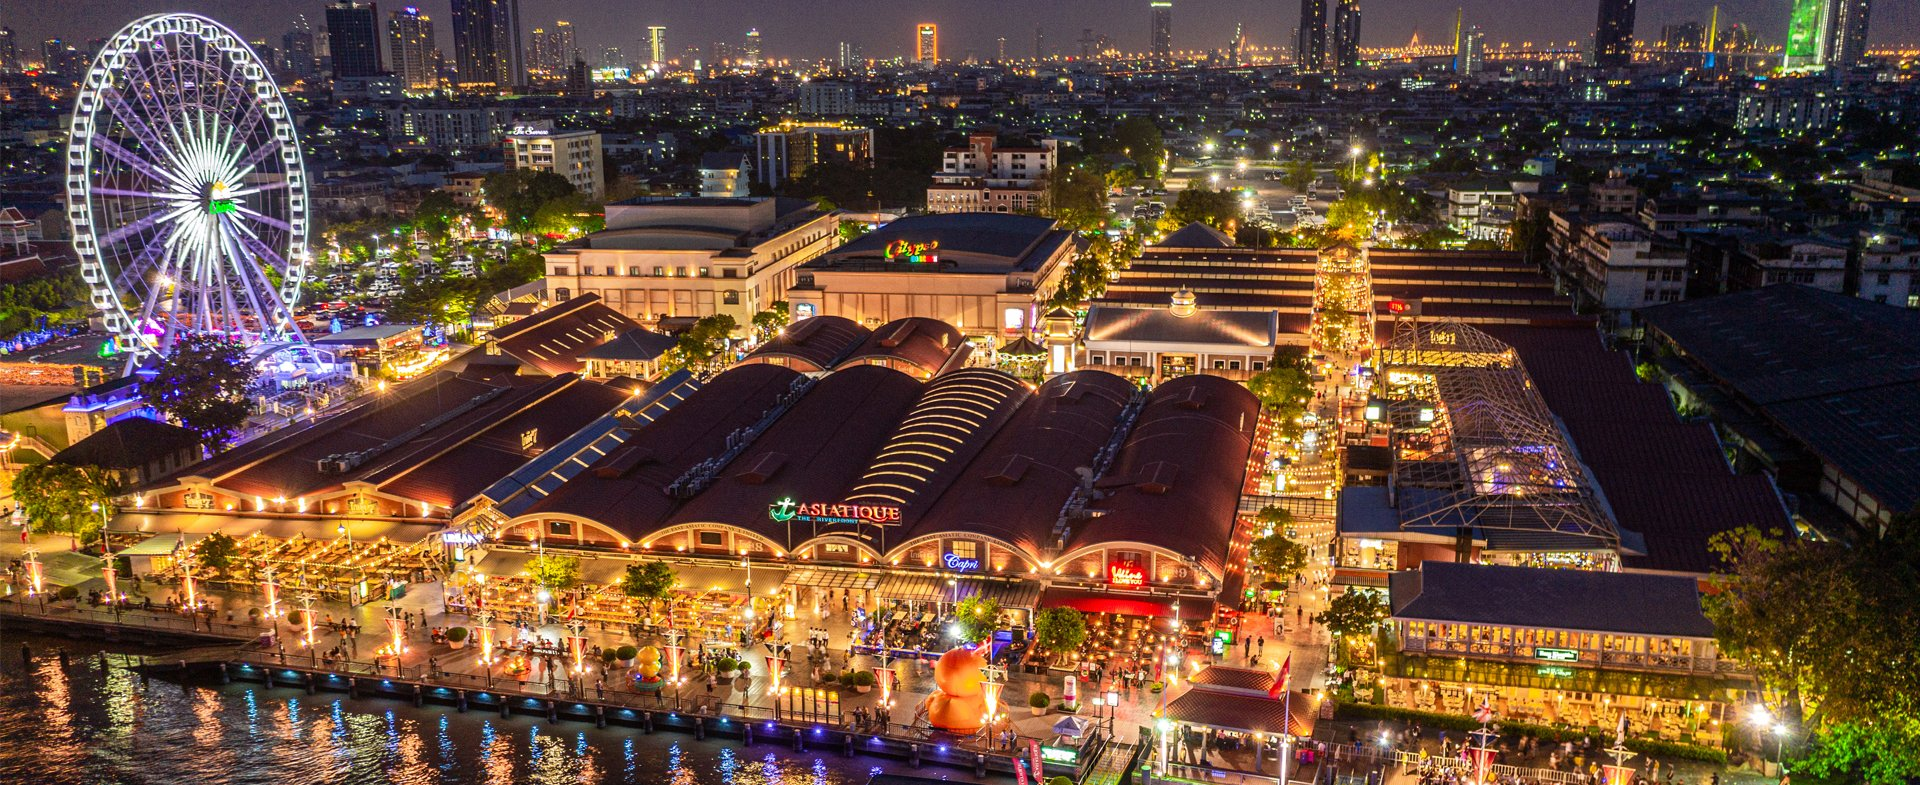 ASIATIQUE THE RIVERFRONT DESTINATION